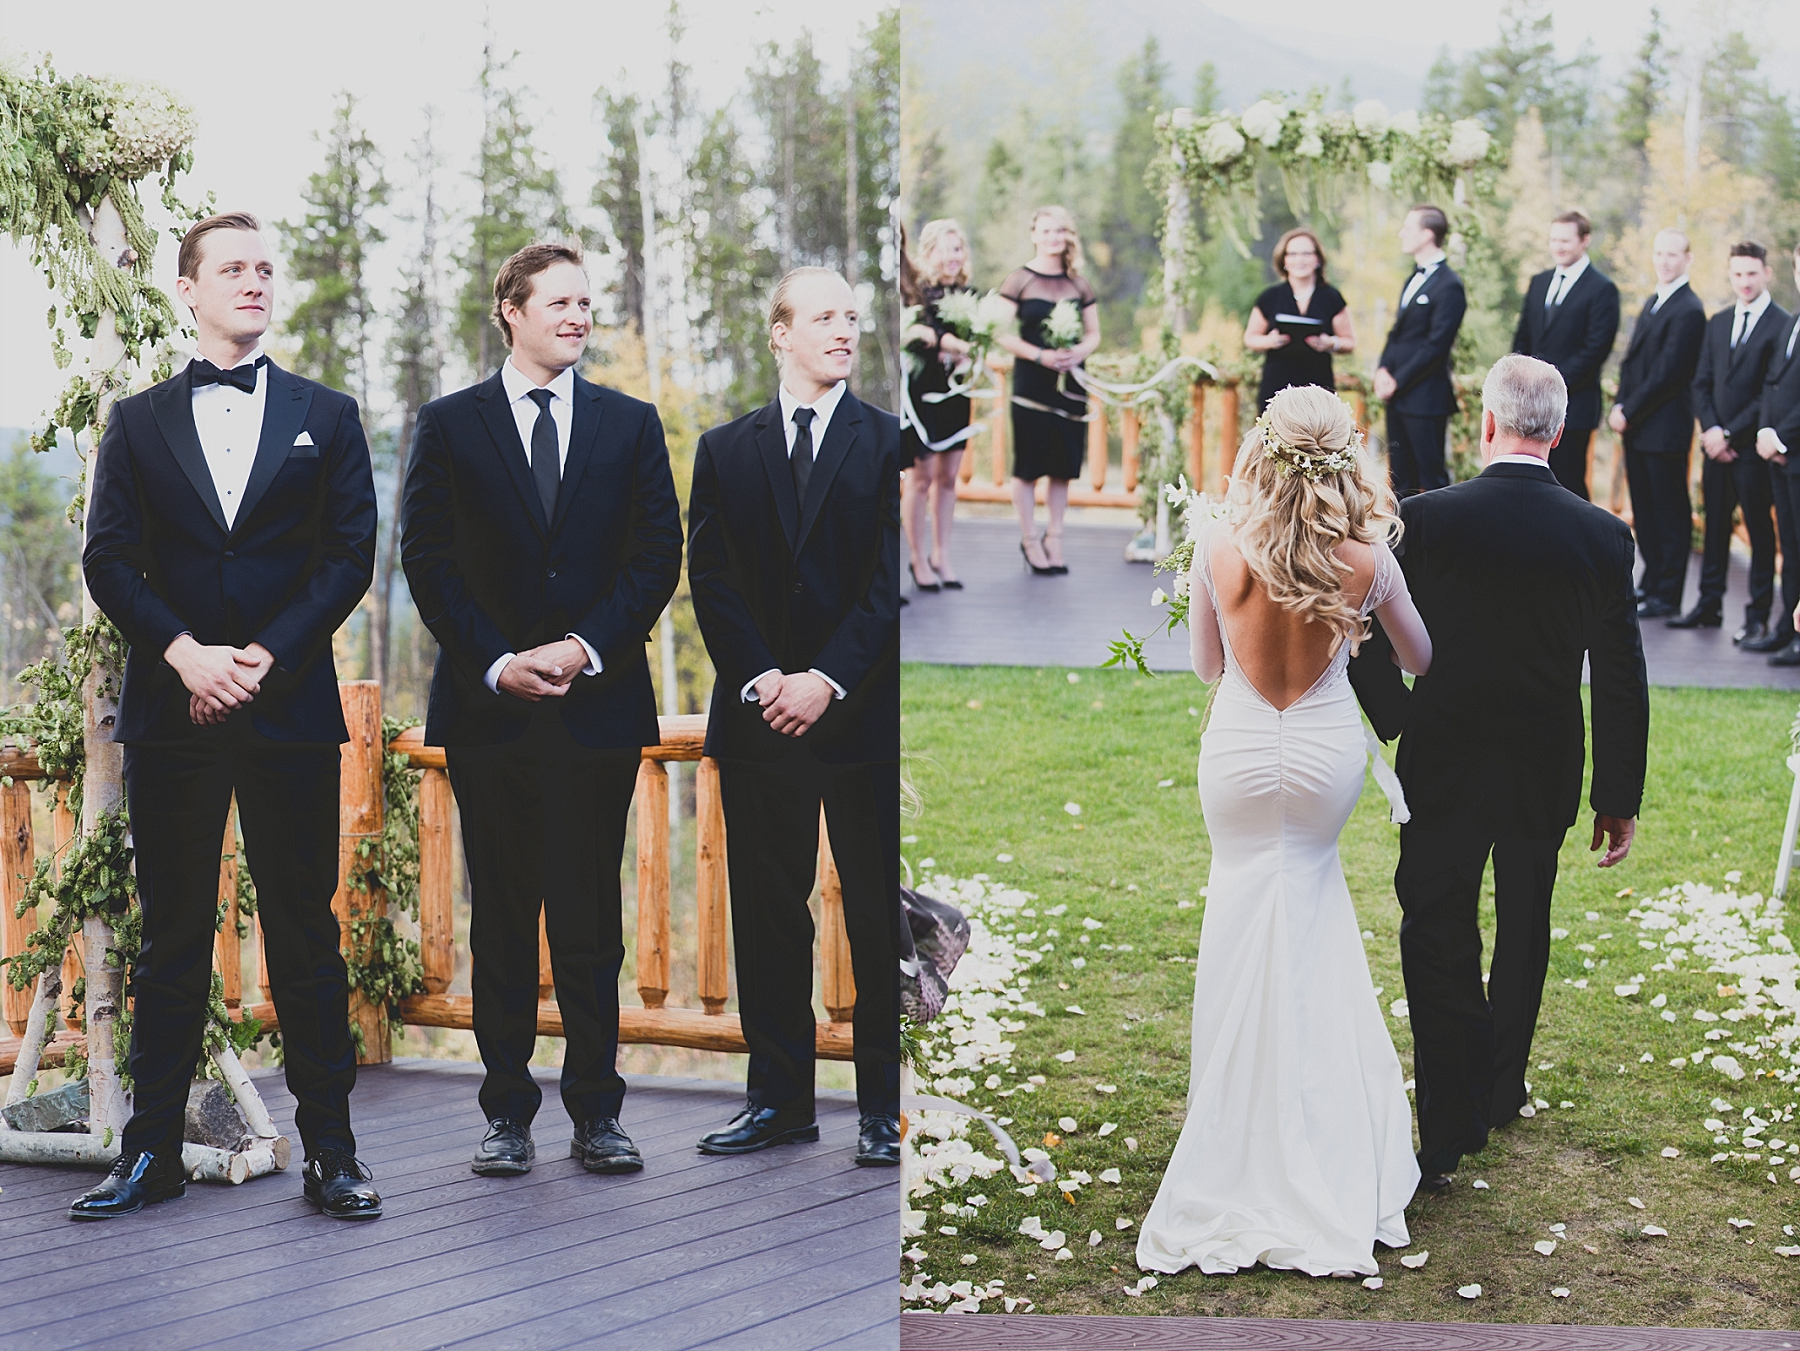 Jennifer_Mooney_Photo_glacier_park_wedding_Beargrass_florals_fall_wedding_elegant_montana_destination_velvet_bride_katie_may_dress_verona_gown_00072.jpg